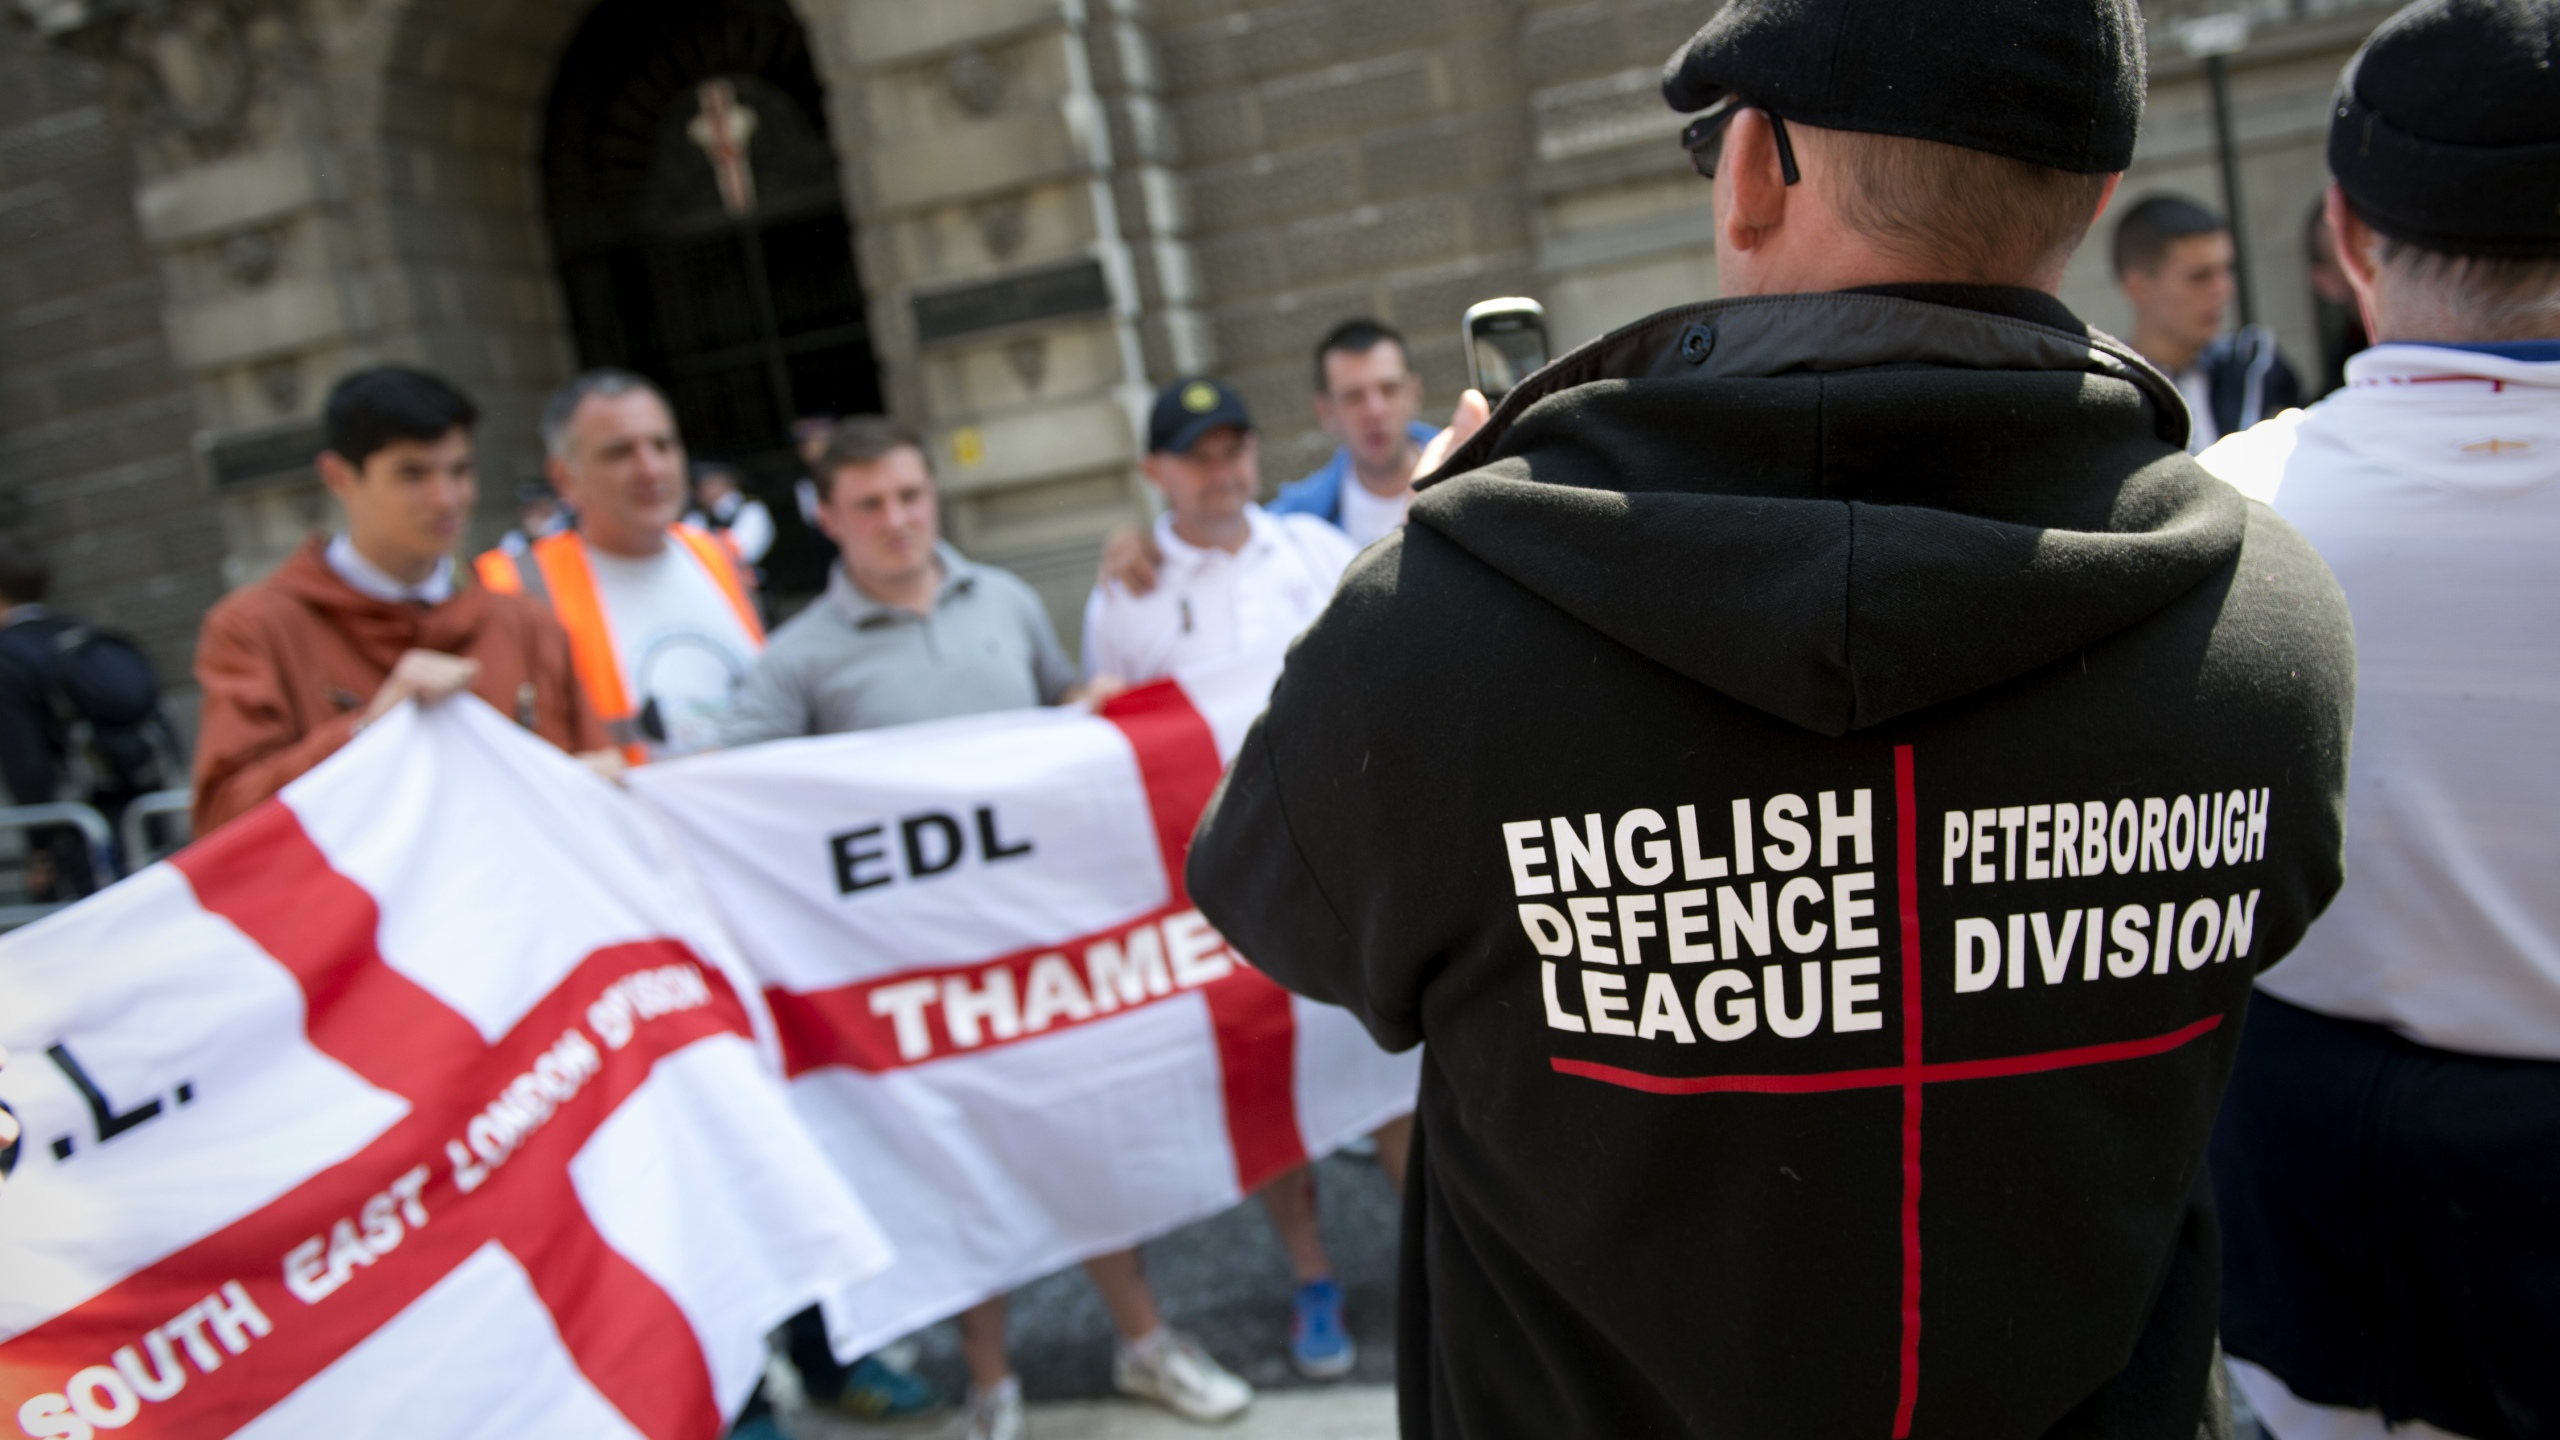 Members of the English Defence League (EDL) pose for a photograph during a rally outside the Old Bailey, in London, on June 6, 2013. (Credit: ADRIAN DENNIS/AFP/Getty Images)